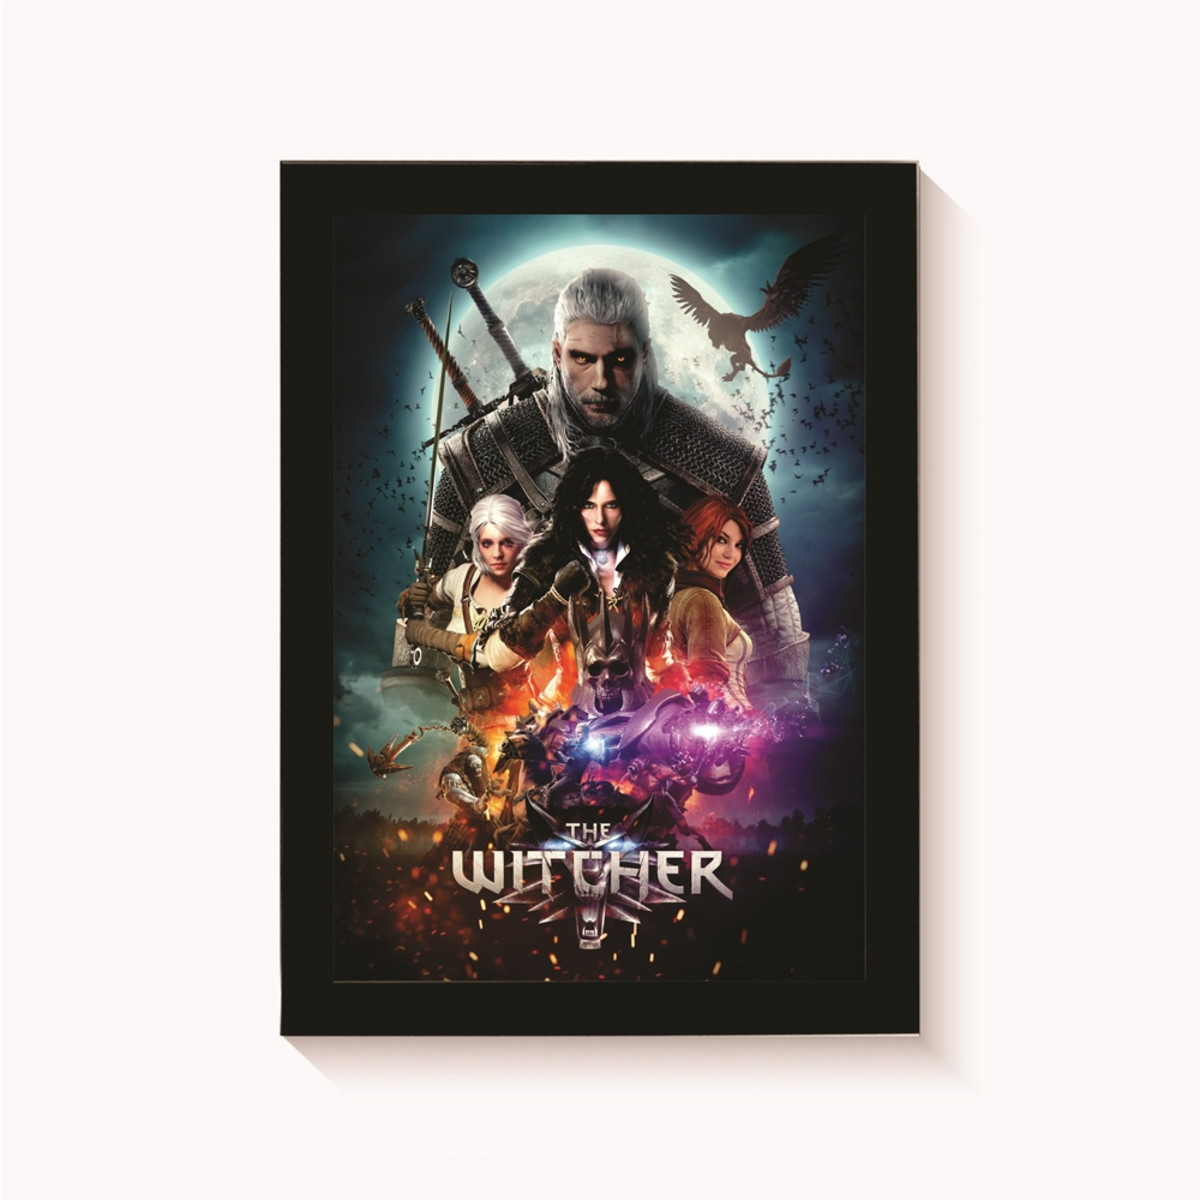 Quadro The Witcher Games Decoracao Casa Moldura 30x20cm No Elo7